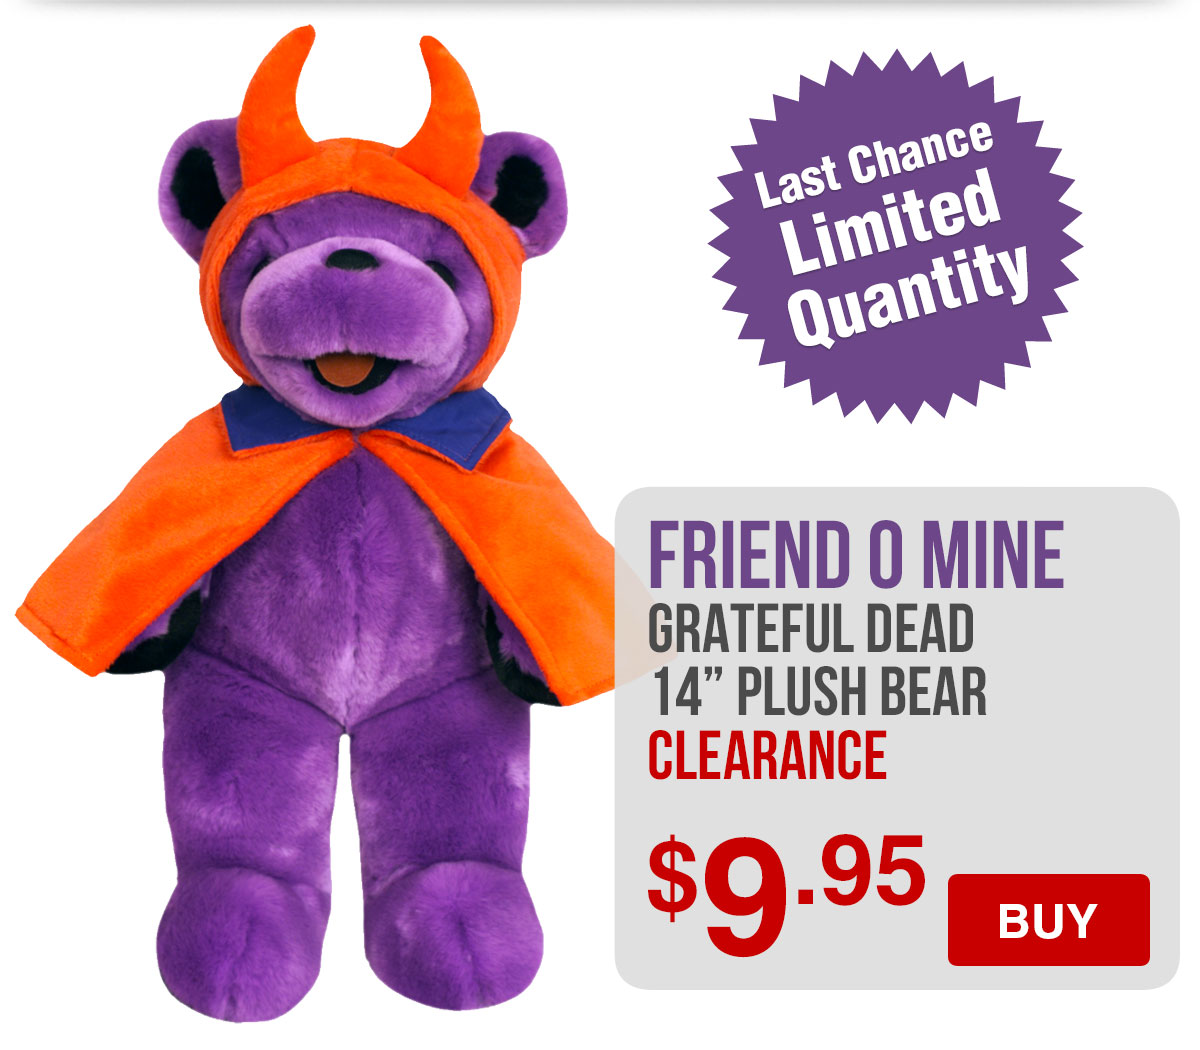 Grateful Dead Friend O Mine Plush Bear